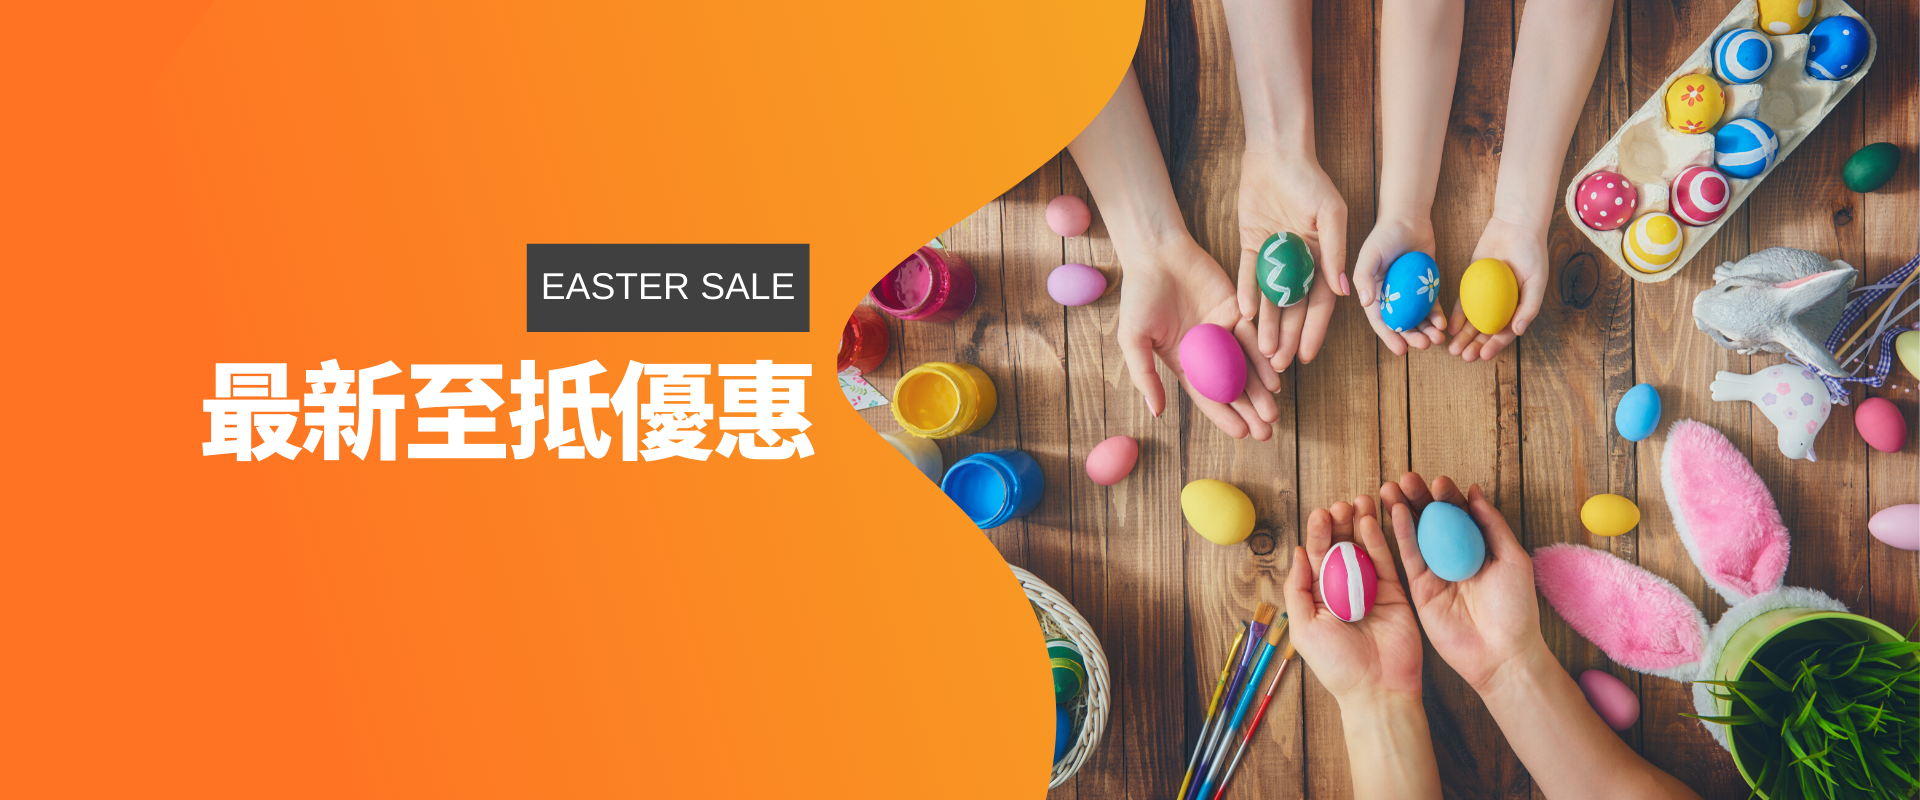 Easter Sale 至抵優惠